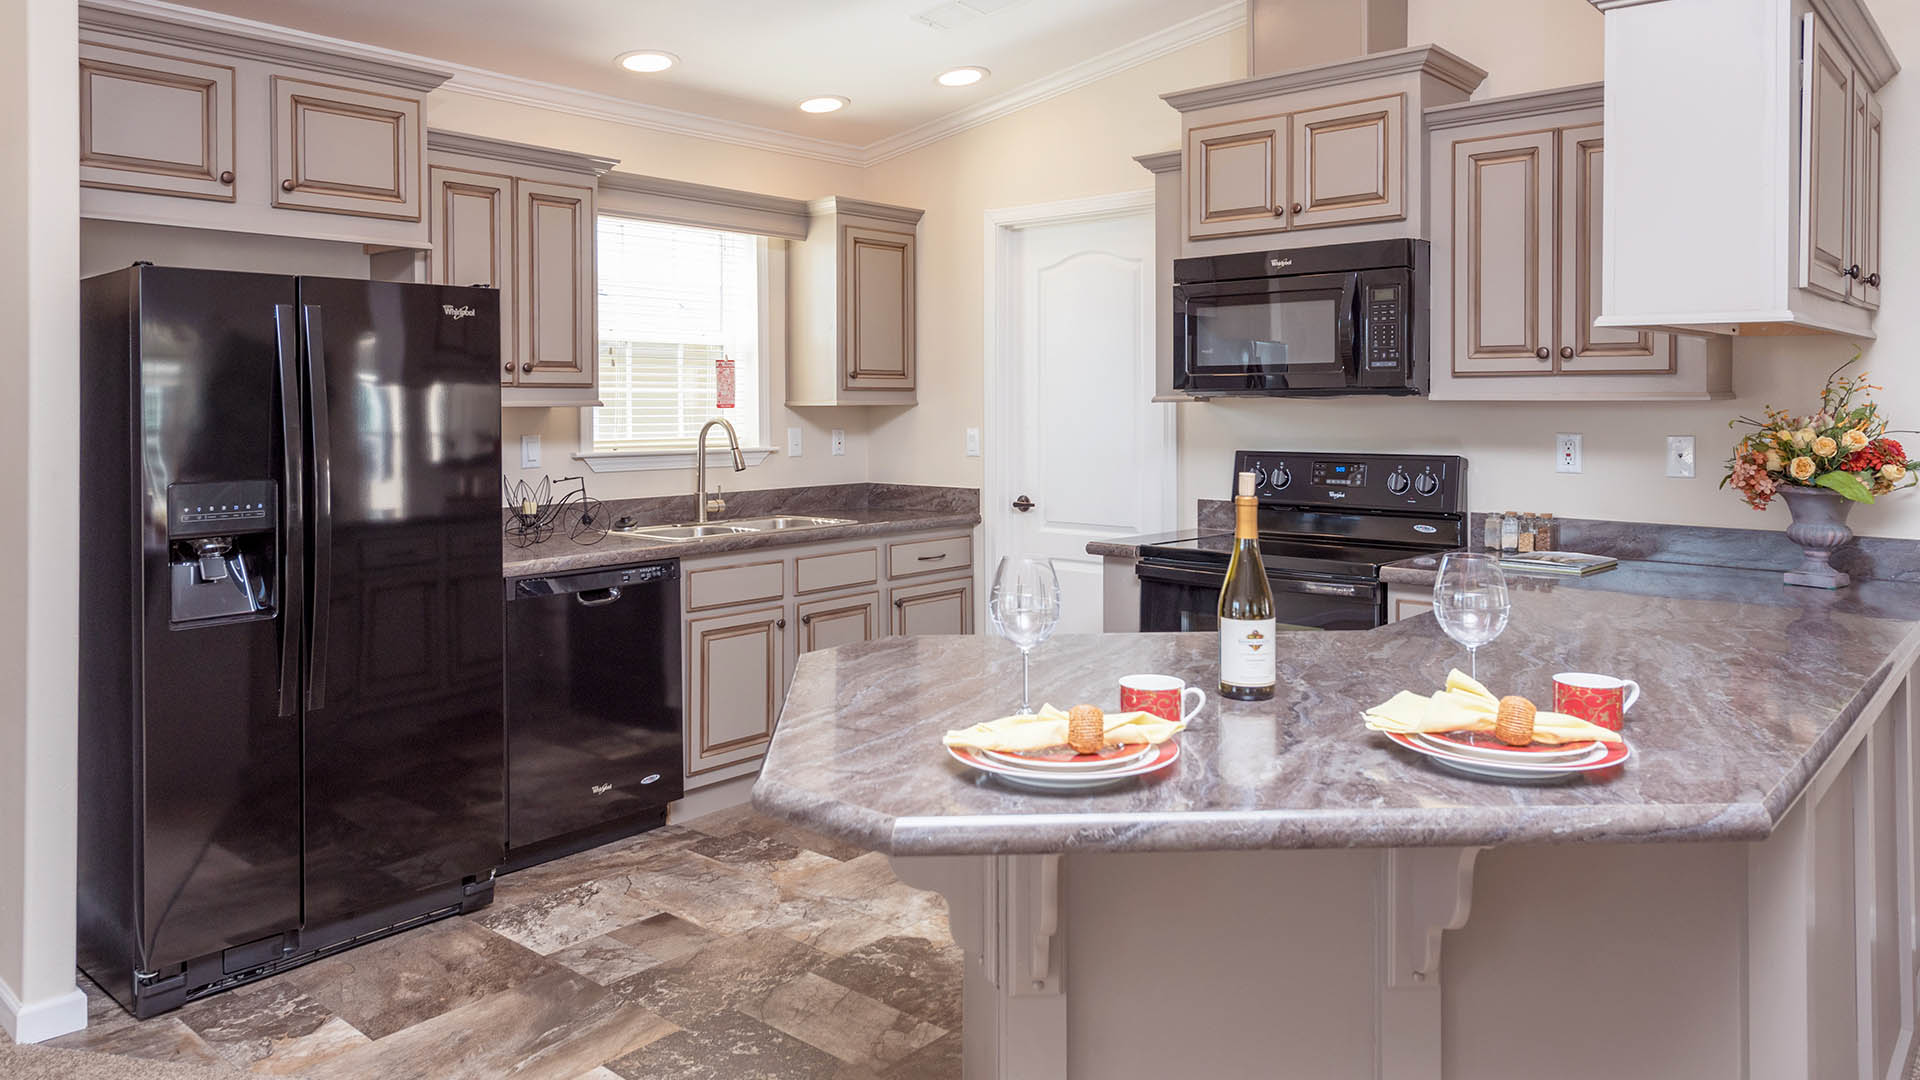 Riverside Club 55+ Golf, Marina and Manufactured Homes Community Residential Kitchen in Ruskin, FL